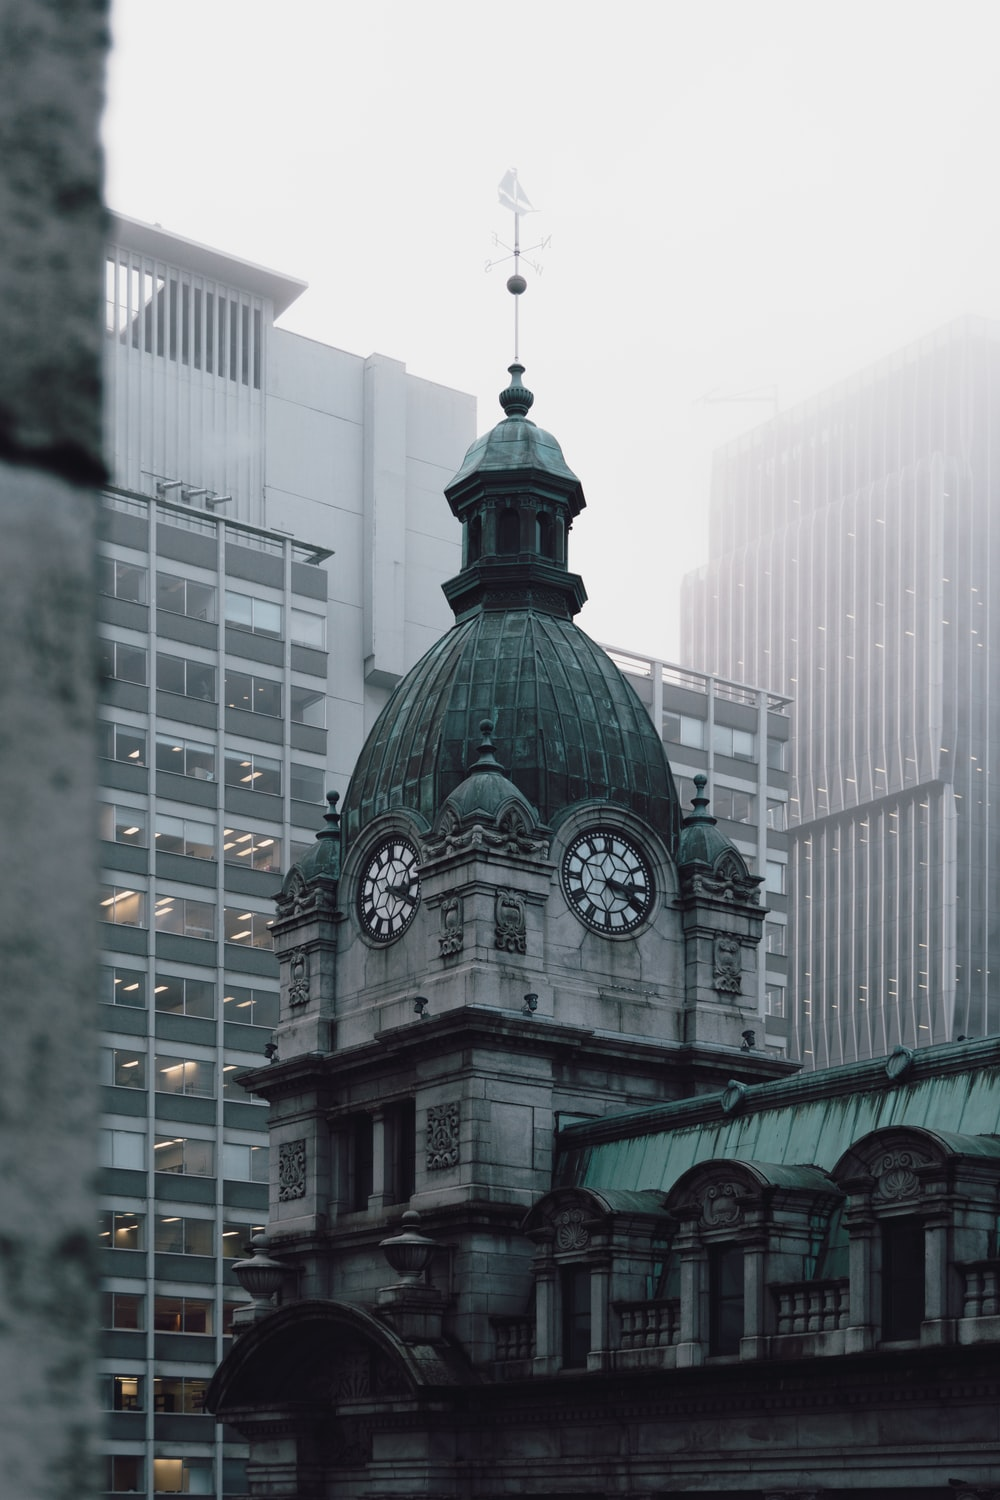 dome concrete building with clock at daytime